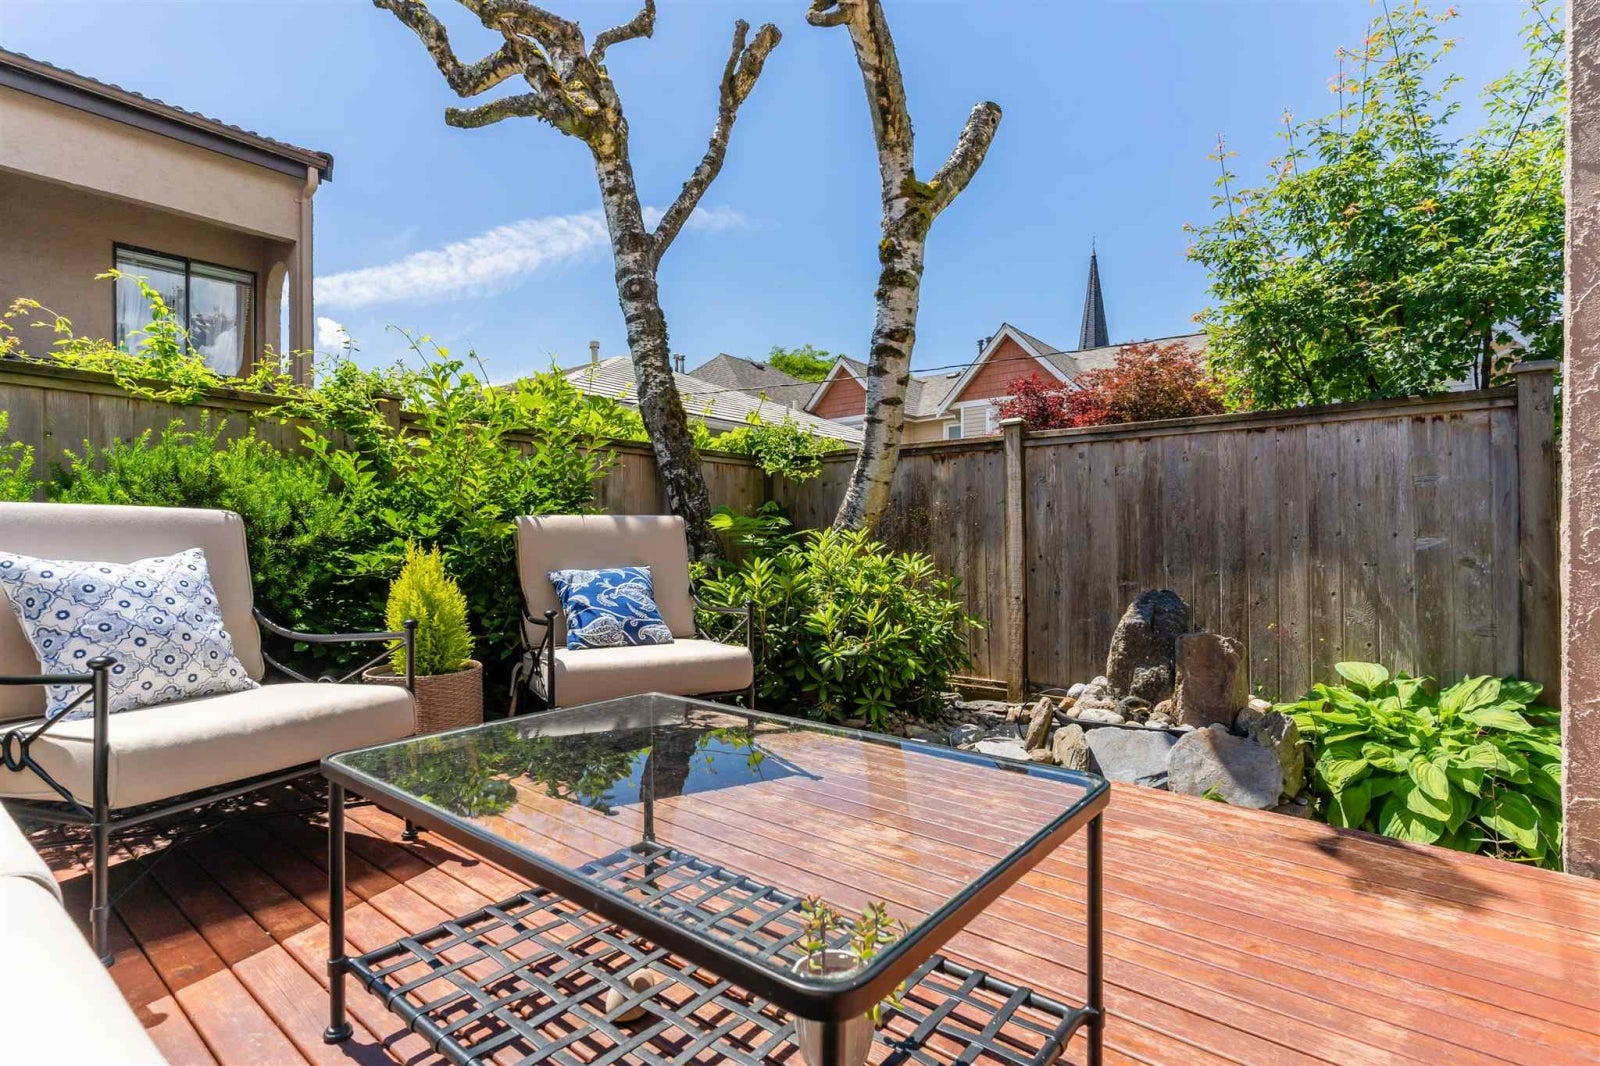 4 226 E 10TH STREET - Central Lonsdale Townhouse for sale, 3 Bedrooms (R2596161) #8